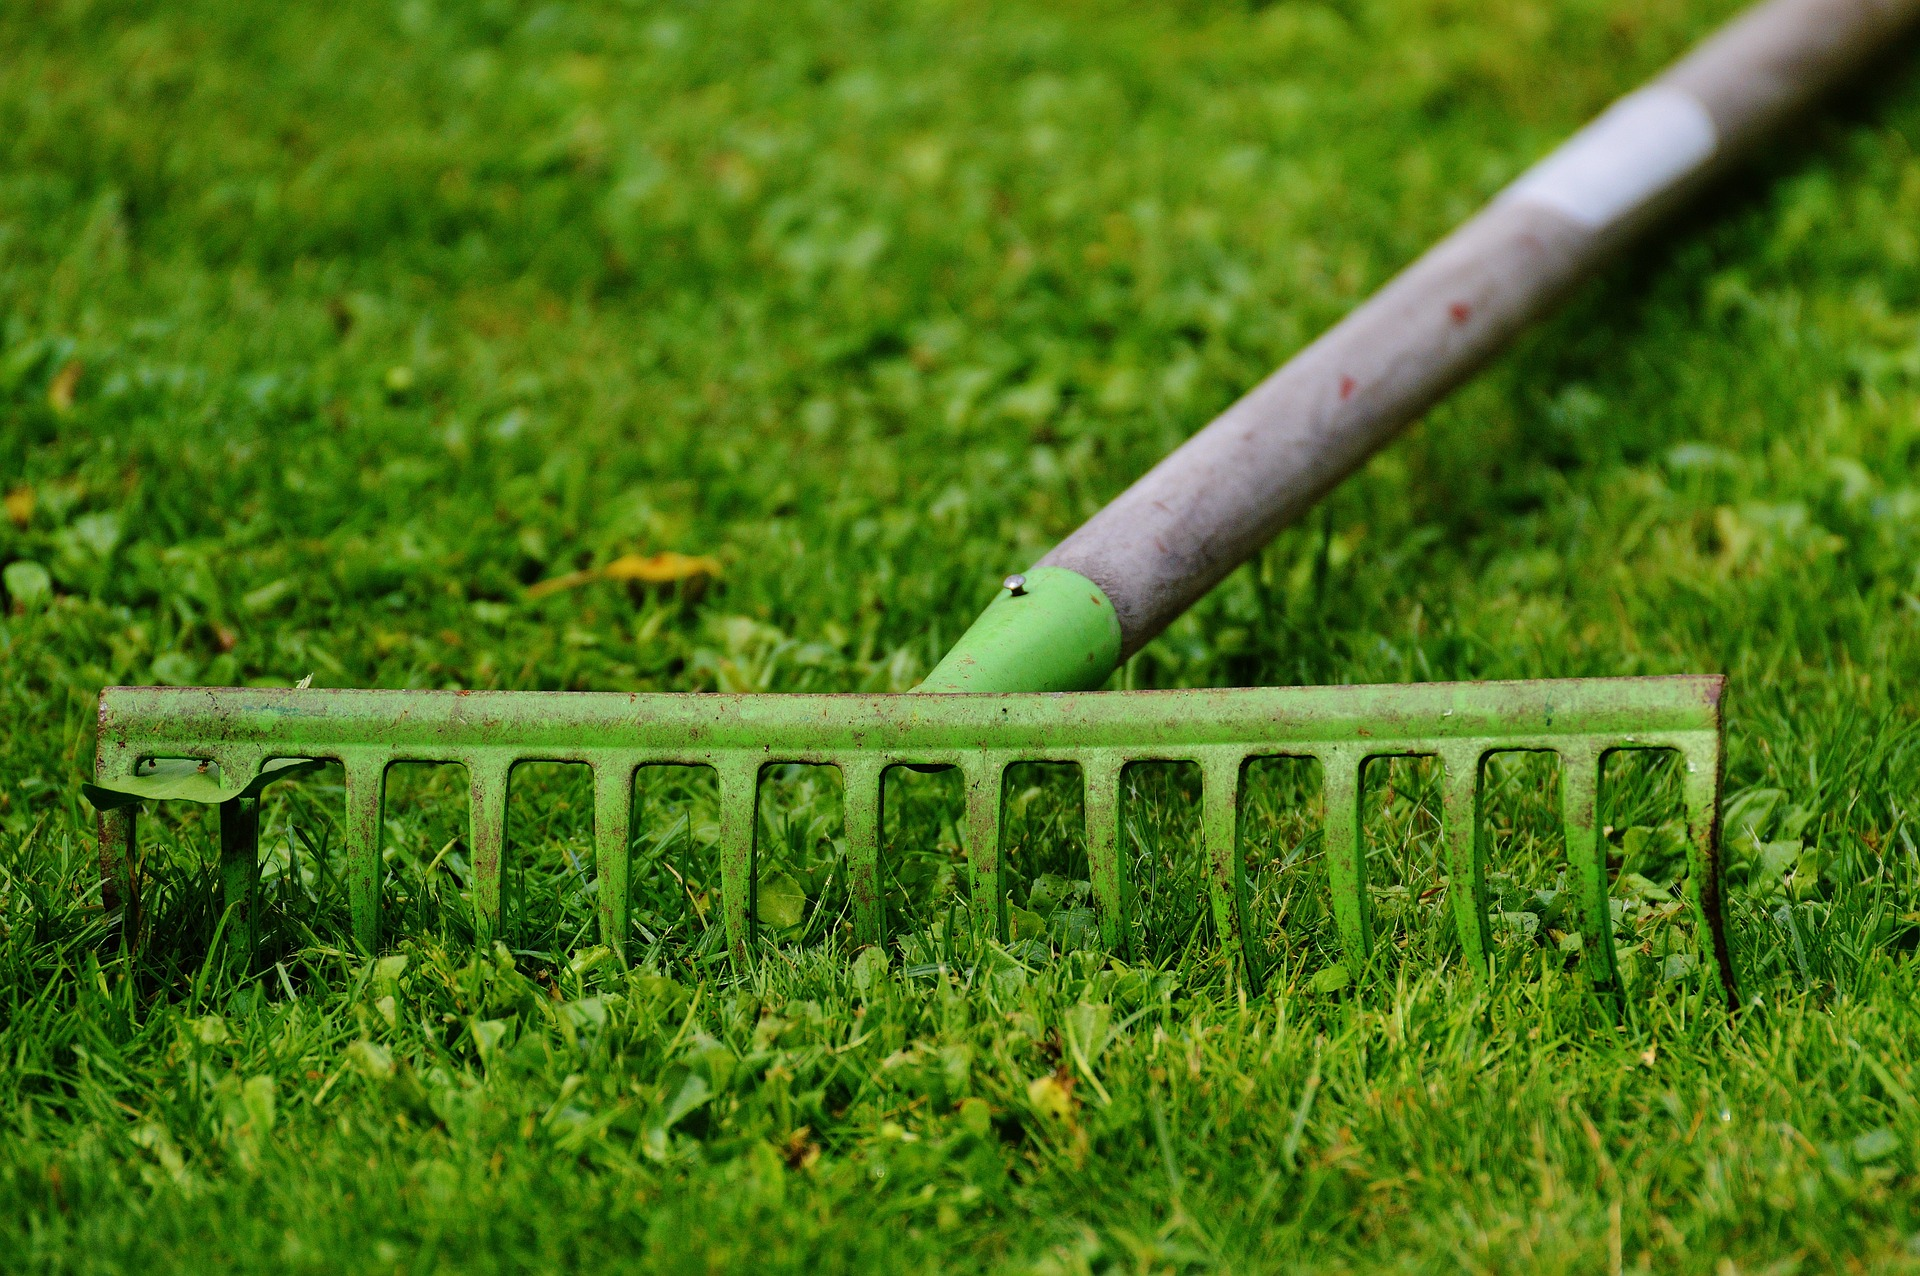 rake and recycle grass clippings